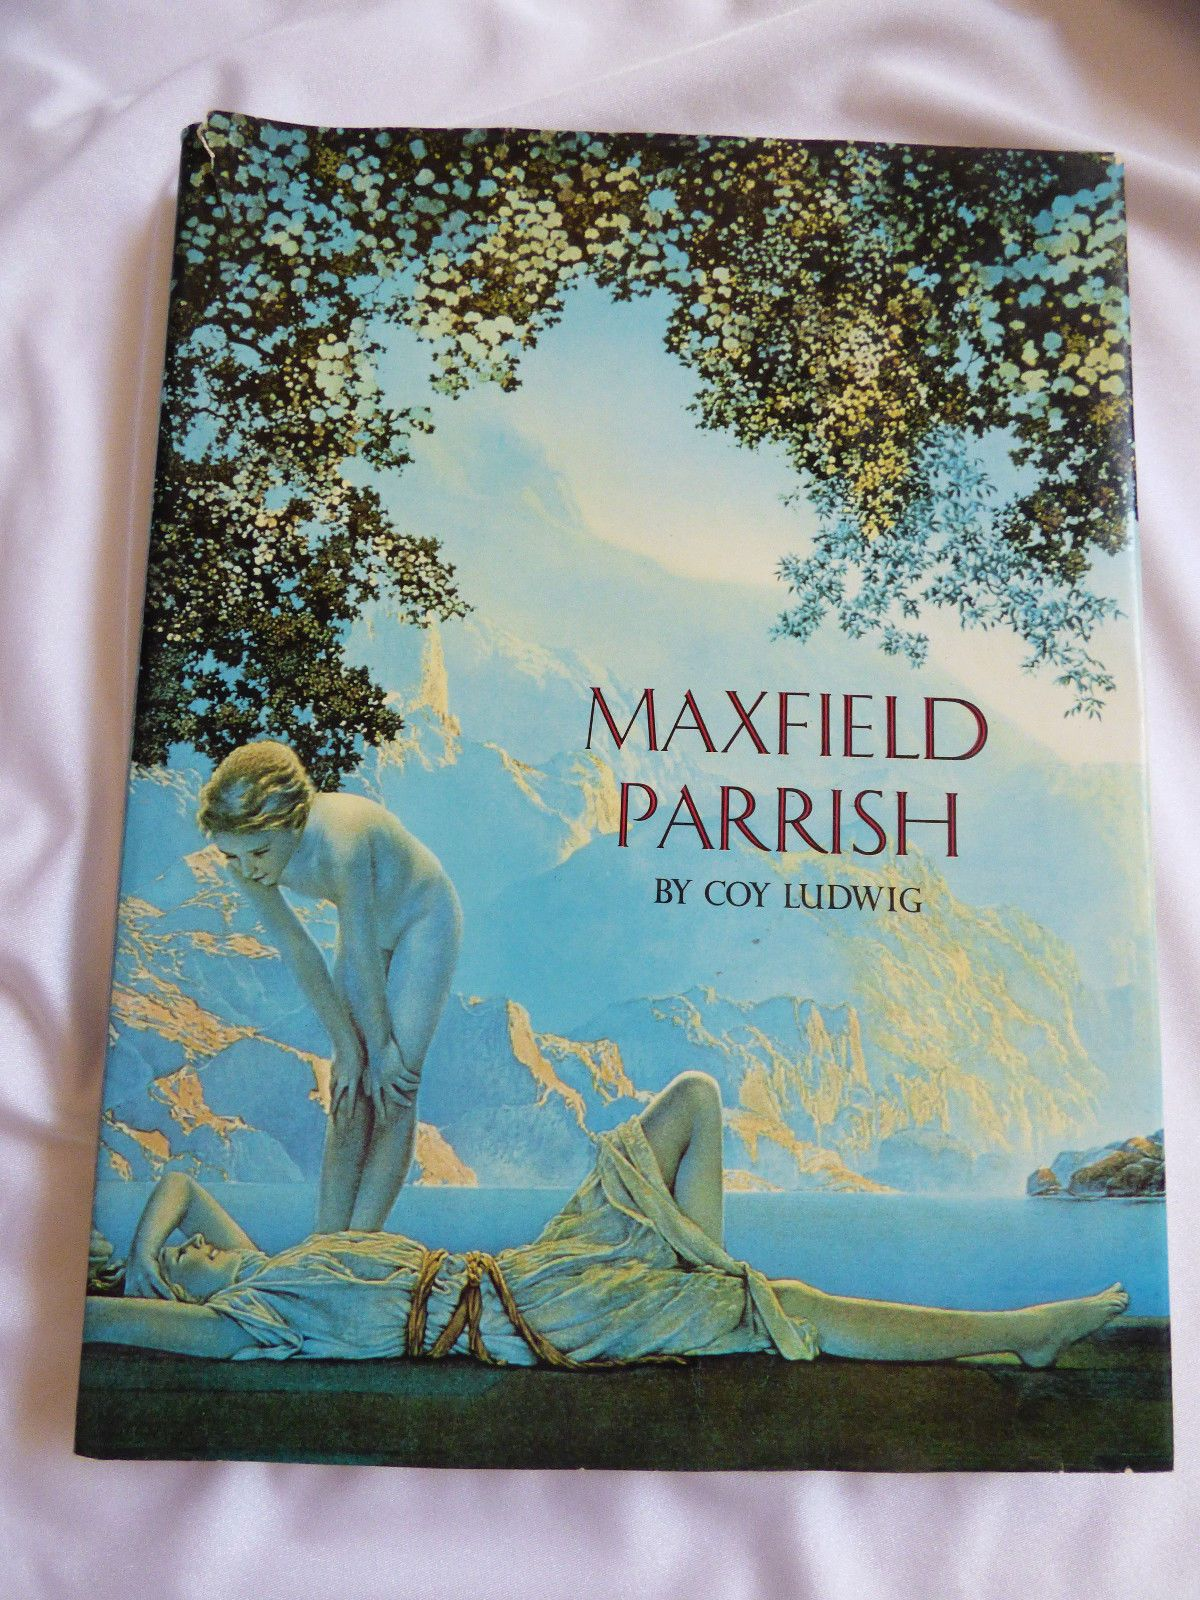 Coffee Art History Vtg Maxfield Parrish By Coy Ludwig 3rd Printing 1975